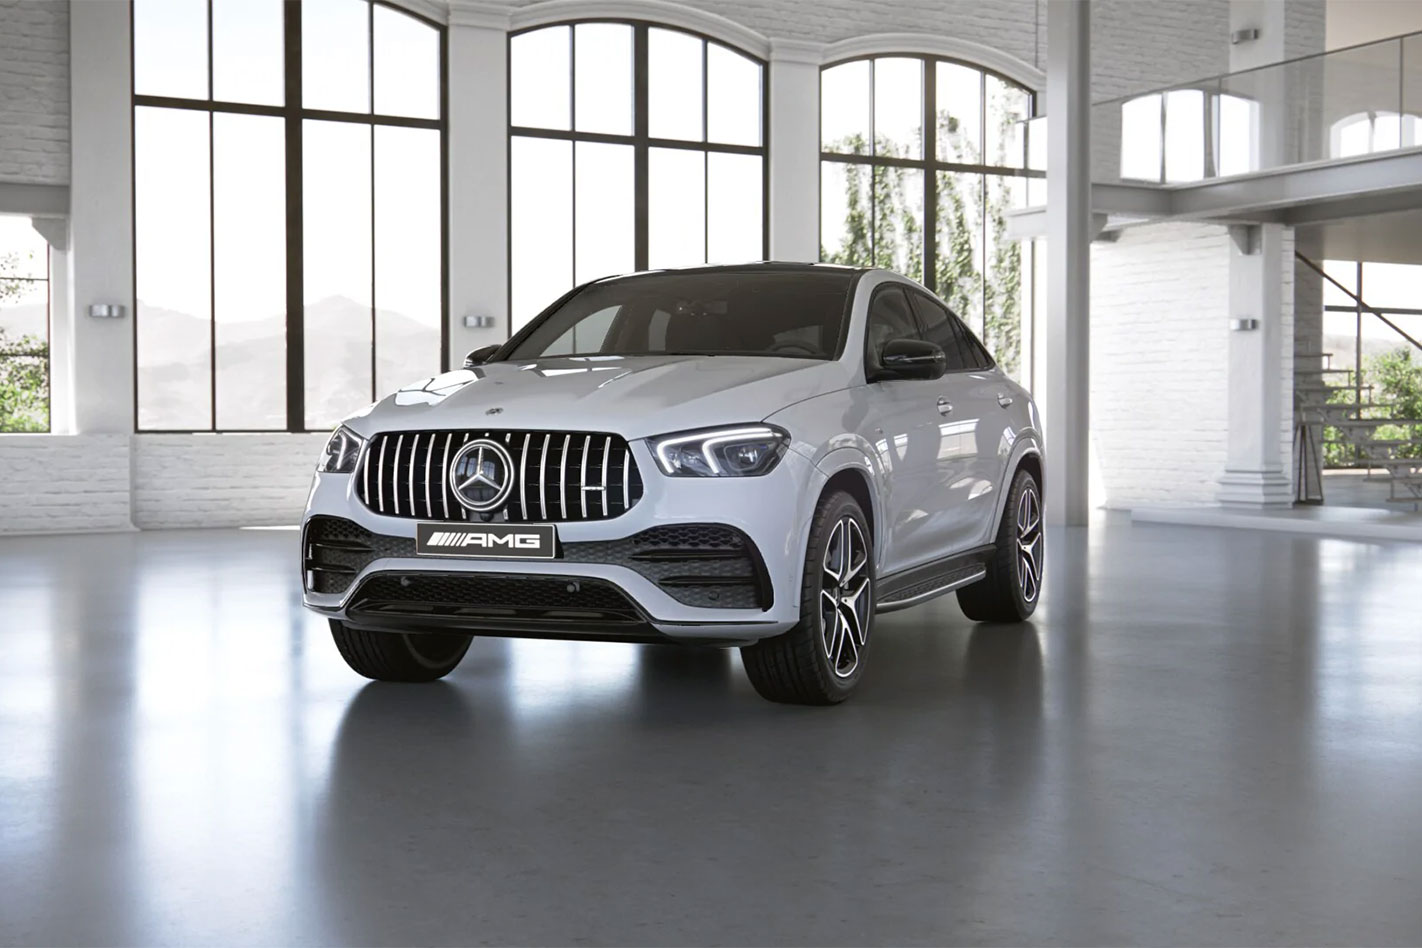 2020 Mercedes Benz Gle Coupe 3 0 Mercedes Amg Gle 53 4matic 3 0l 6cyl Hybrid Turbocharged Automatic Suv